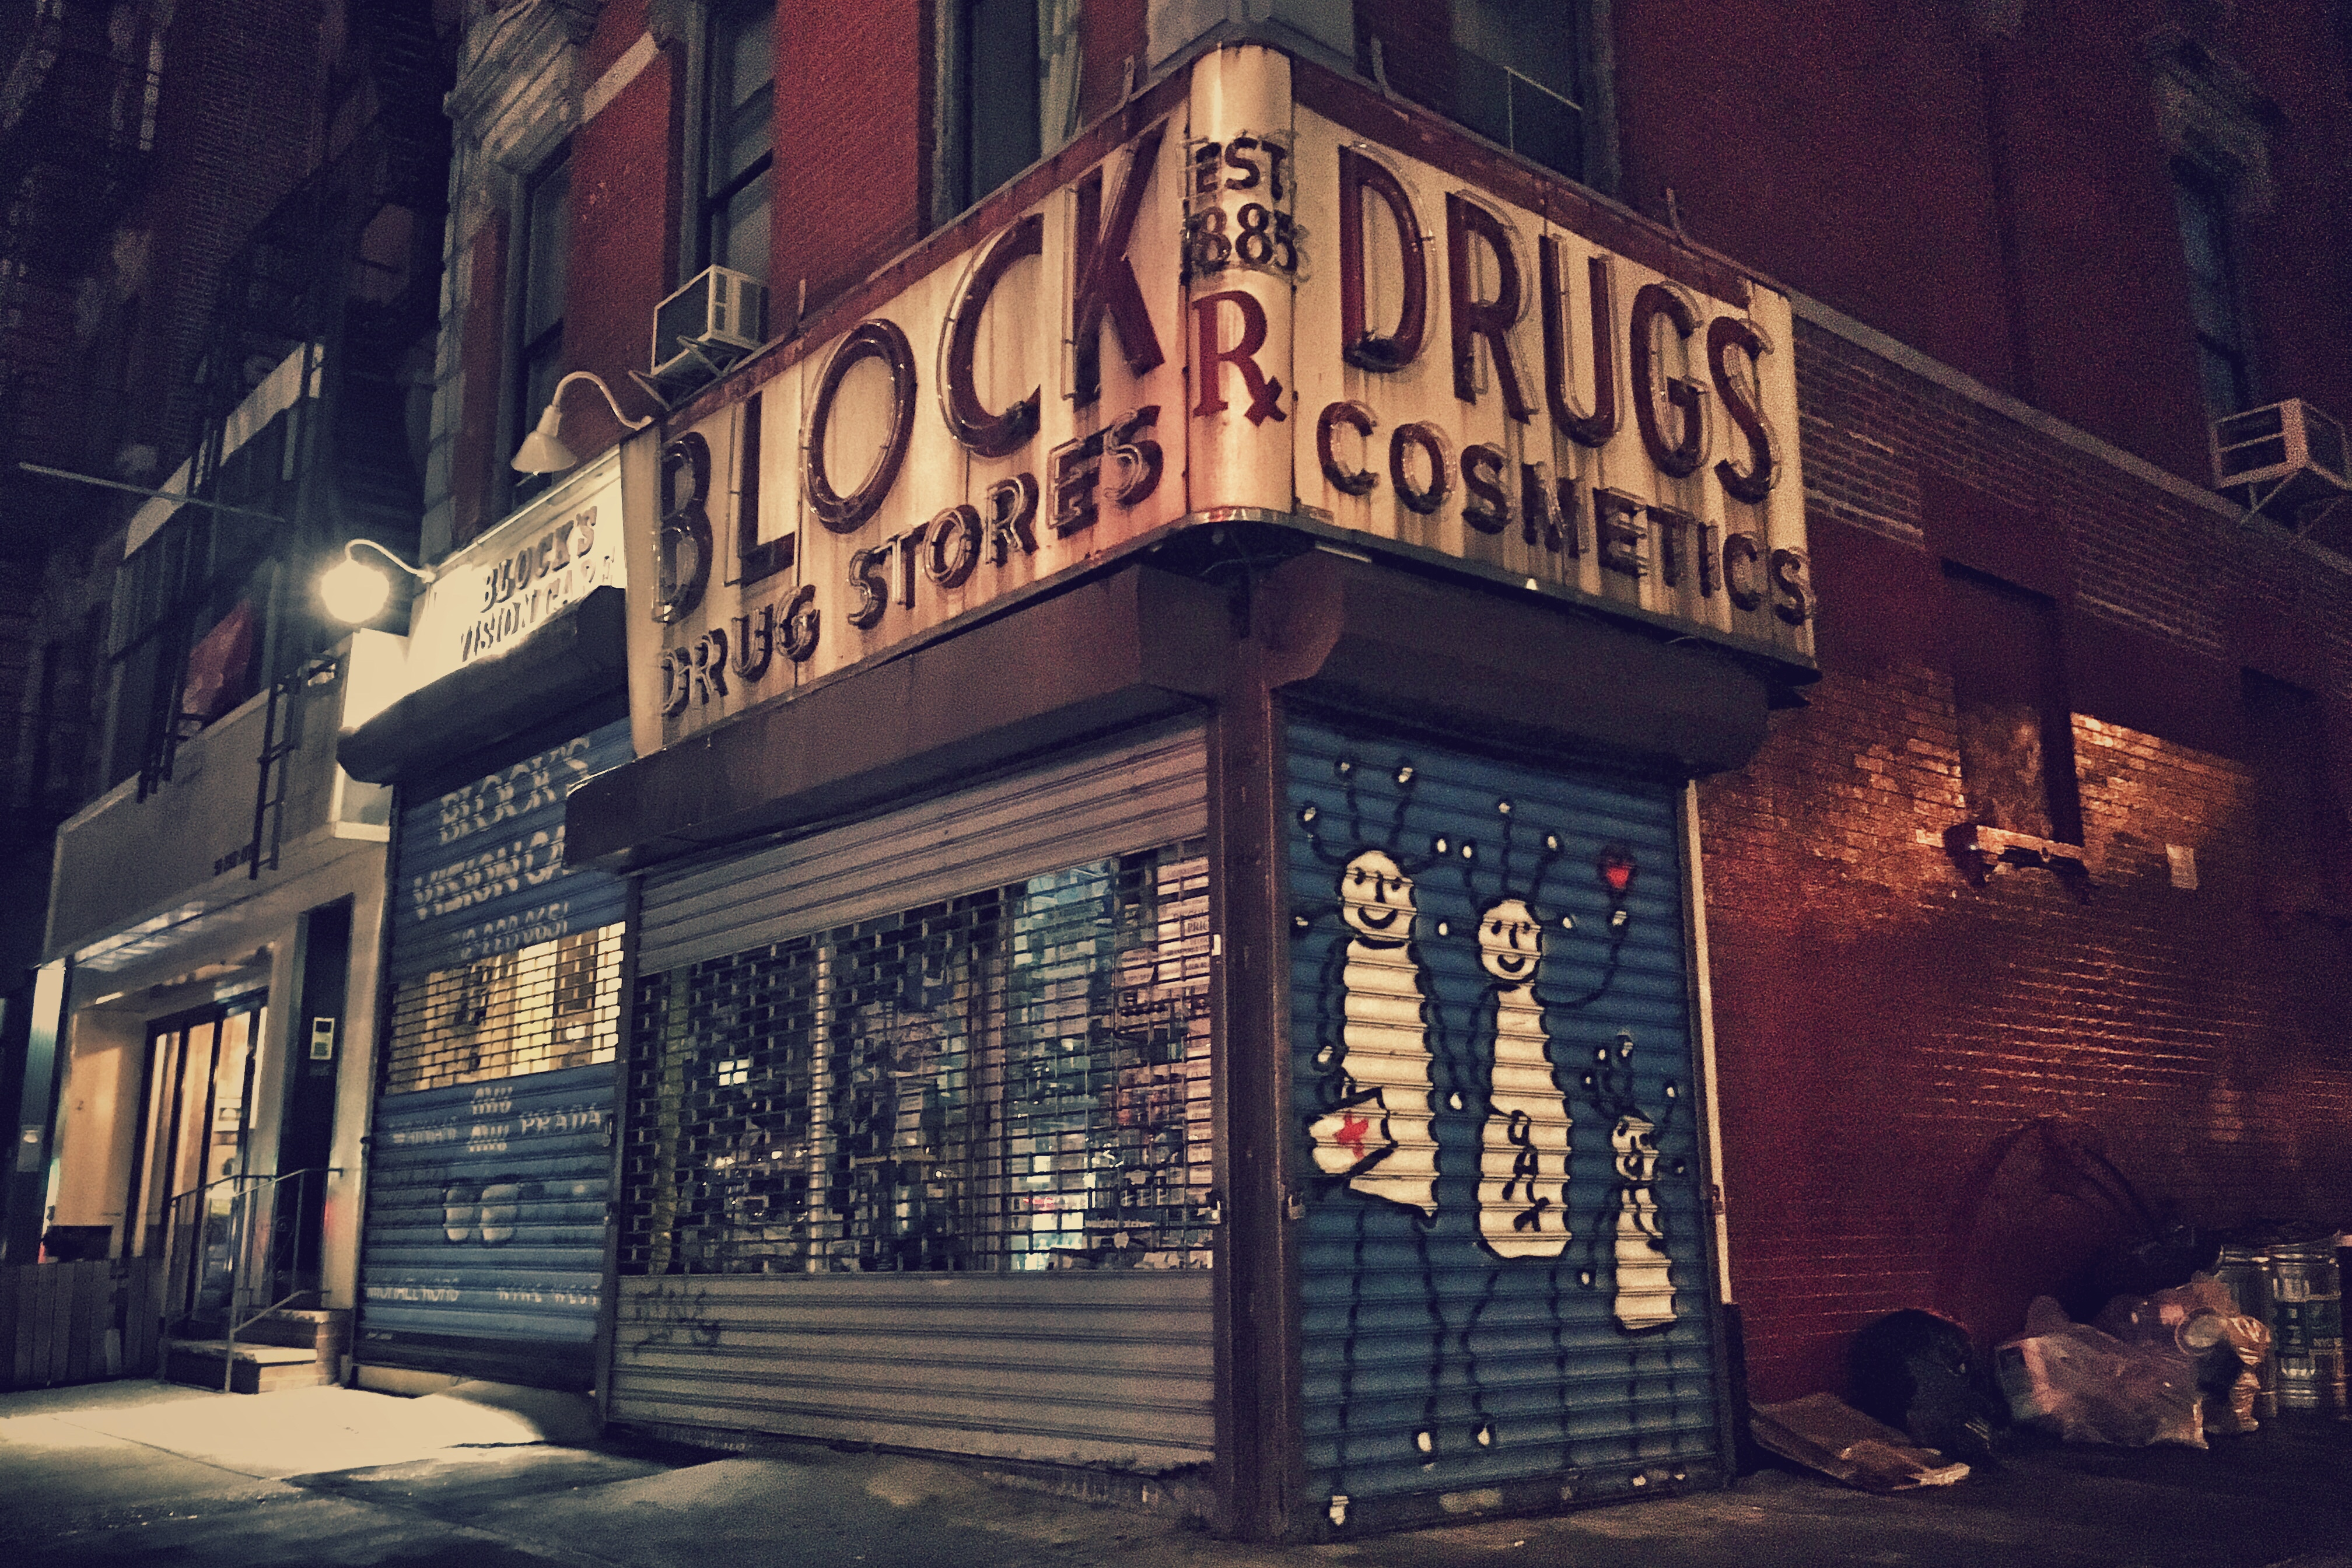 Block Drug Store - 101 2nd Avenue, New York City, New York U.S.A. - May 10, 2018